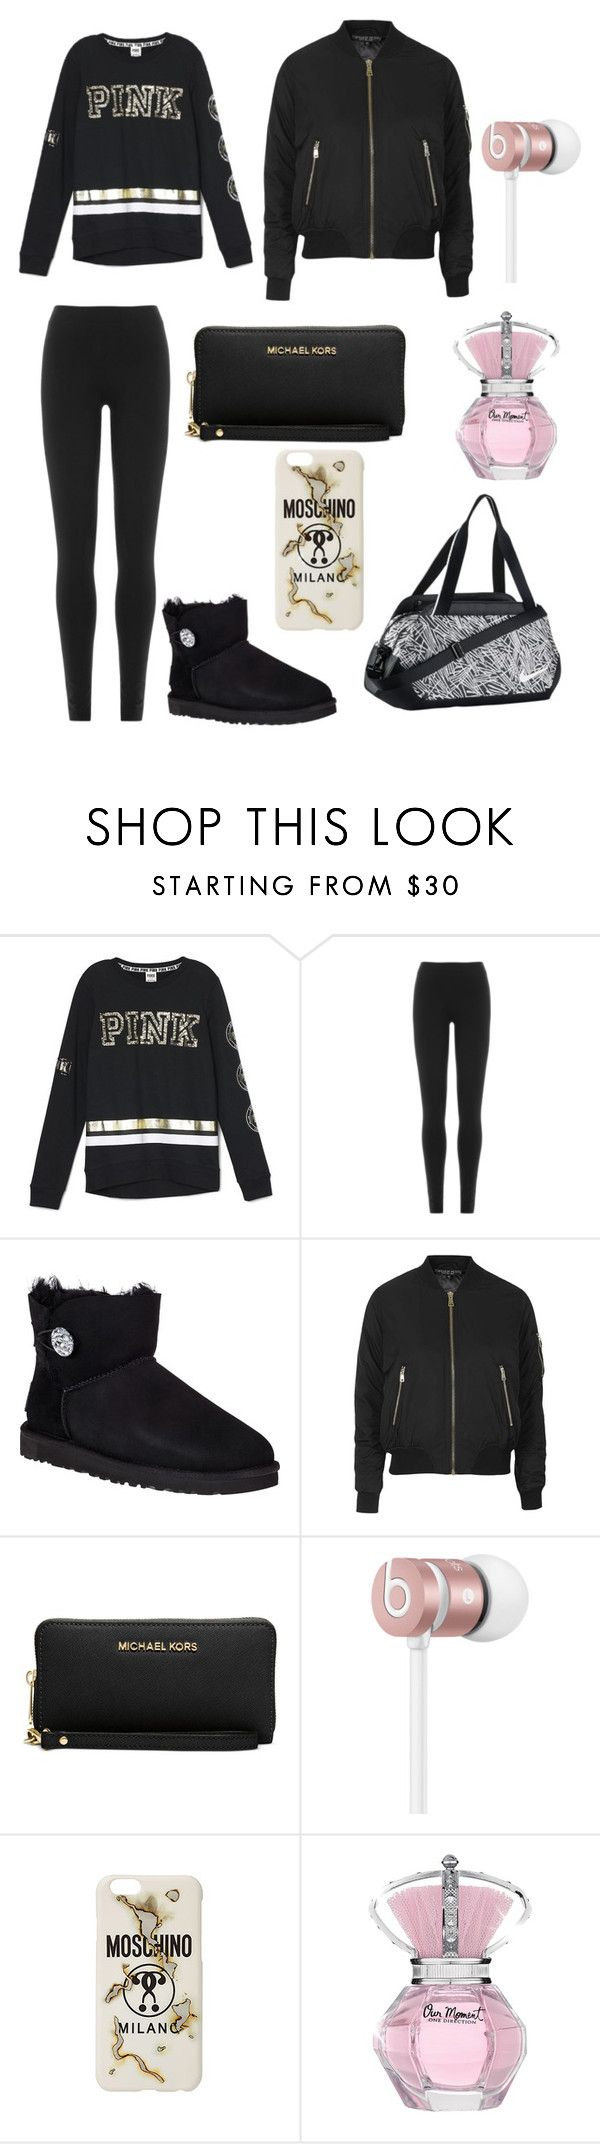 """Getting To Cheerleader Training "" by directioners269 ❤ liked on Polyvore featuring Victoria's Secret, DKNY, UGG Australia, Topshop, Michael Kors, Beats by Dr. Dre, Moschino and NIKE"